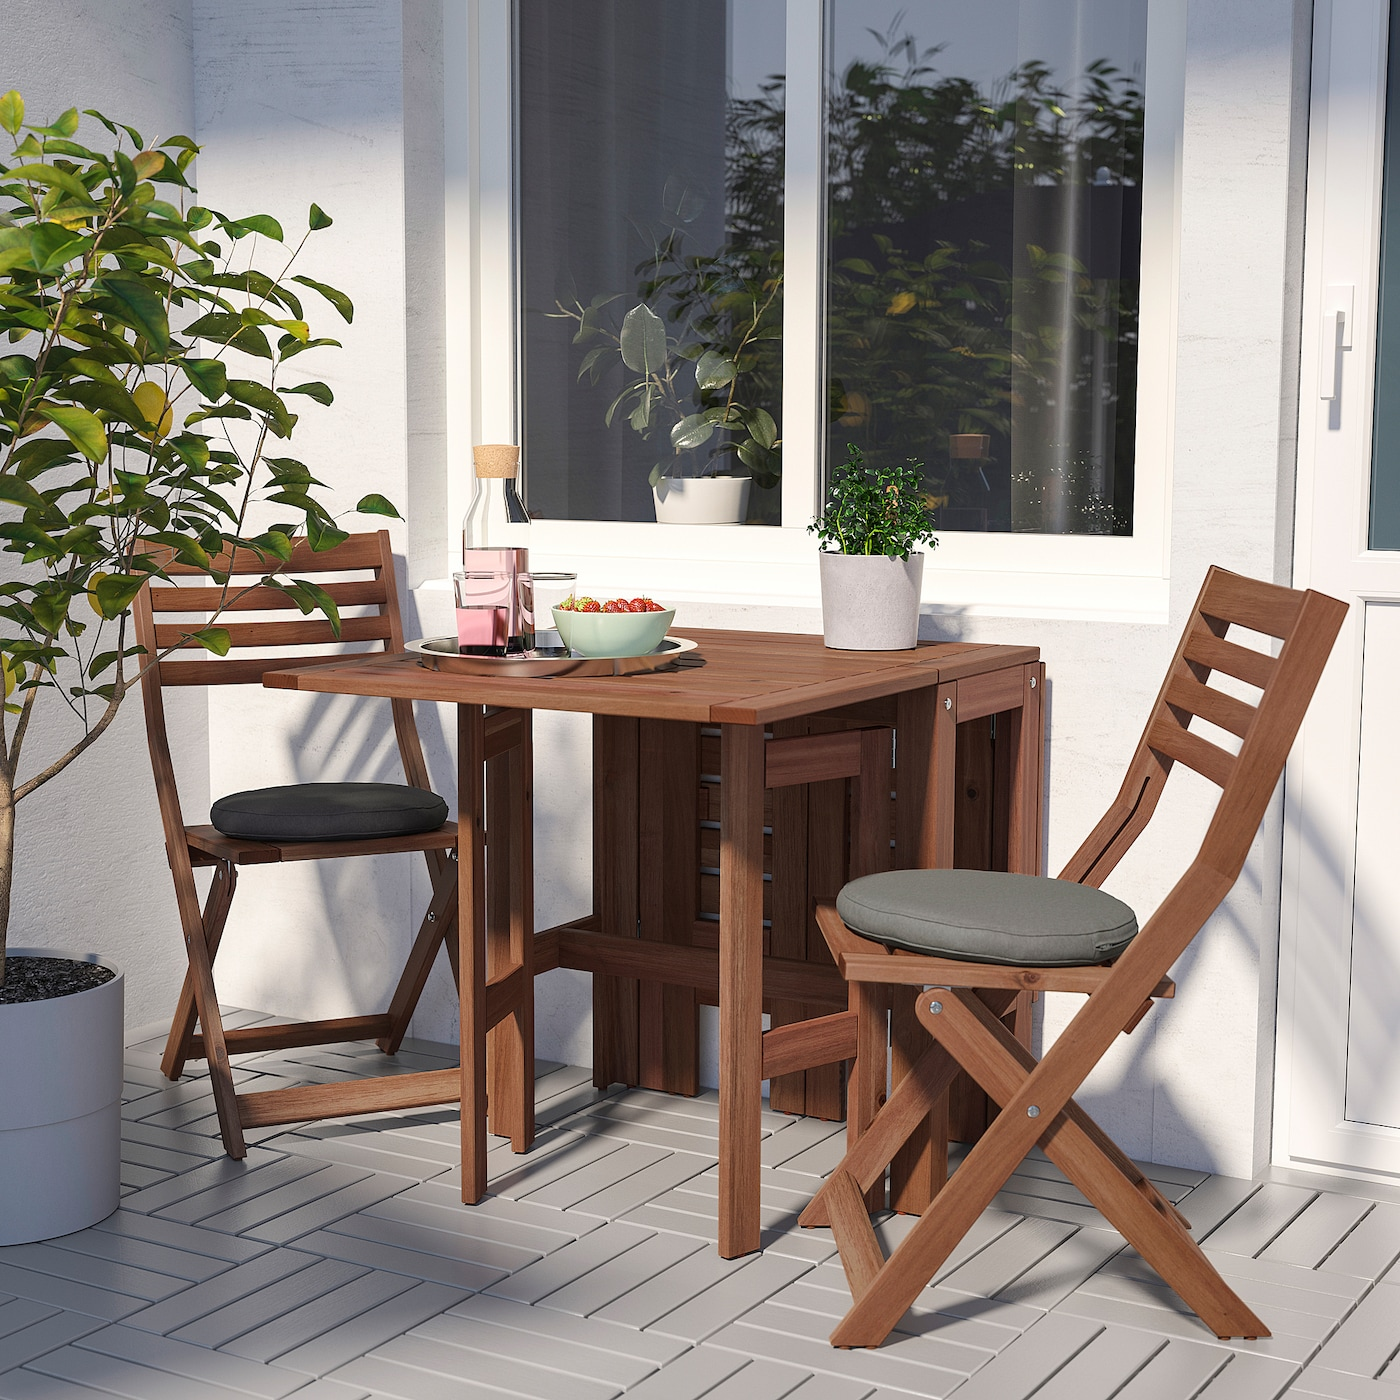 Applaro Table Pliante Exterieur Teinte Brun Ikea